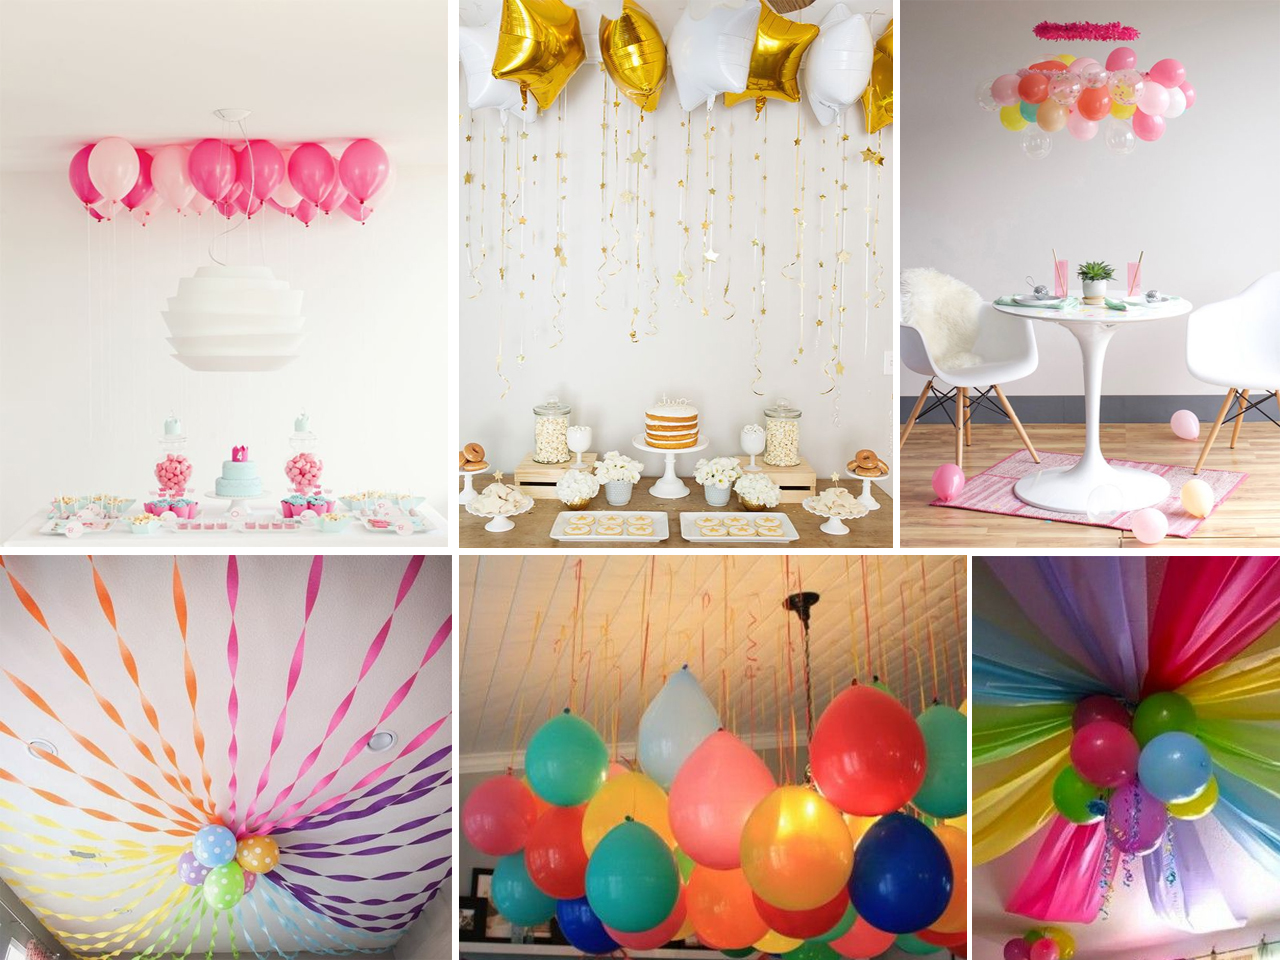 Descubre c mo decorar con globos con estas fant sticas ideas - Ideas para decorar vestibulos ...